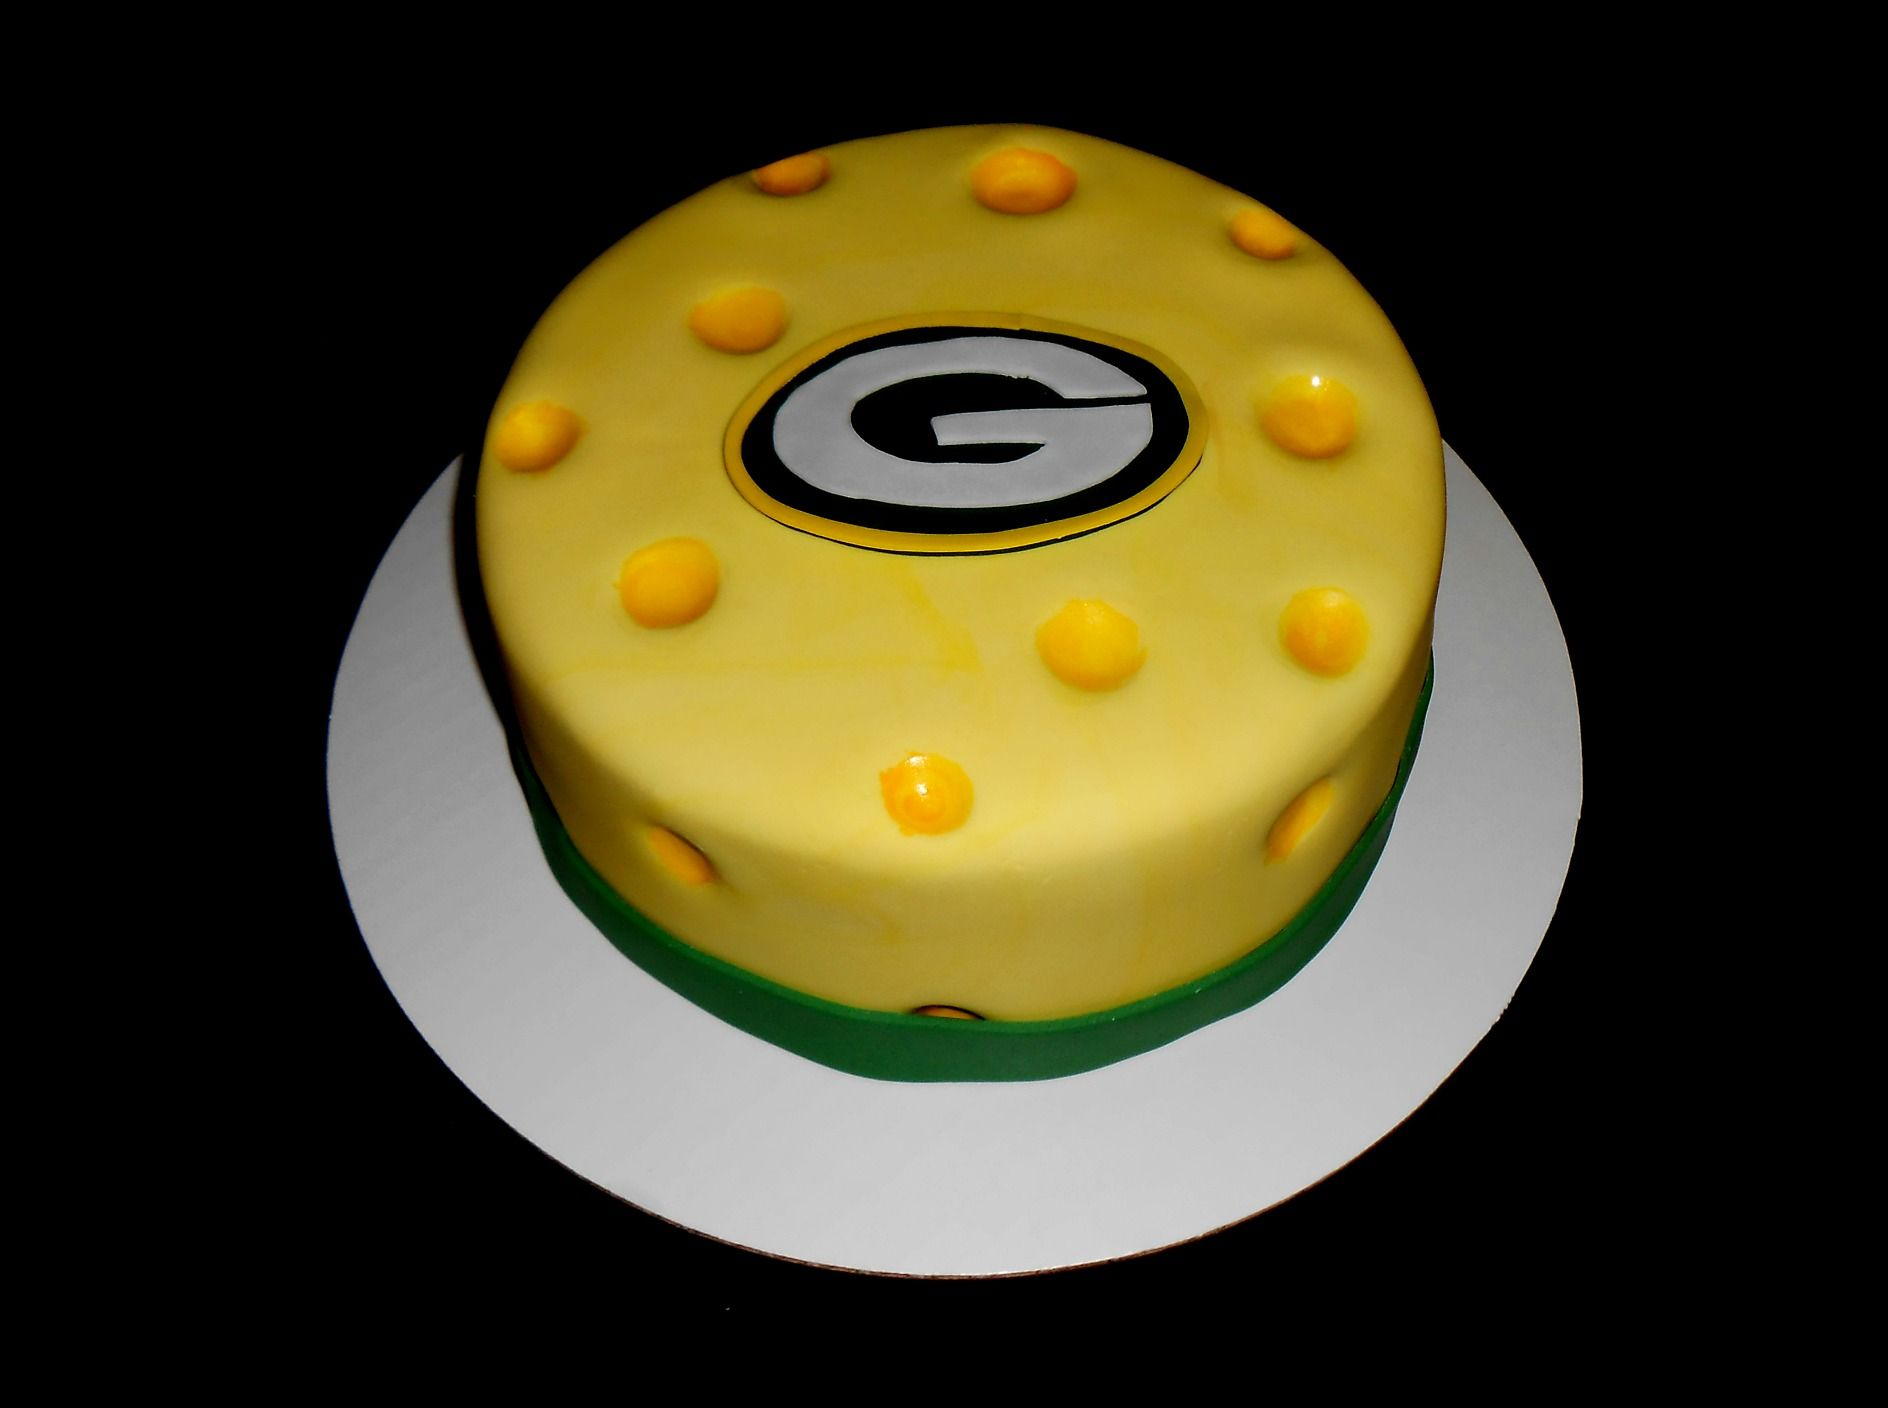 Green Bay Packers Cake I Wanna Make This For My Hubbys Birthday Green Bay Packers Cake Packers Cake Green Bay Cake